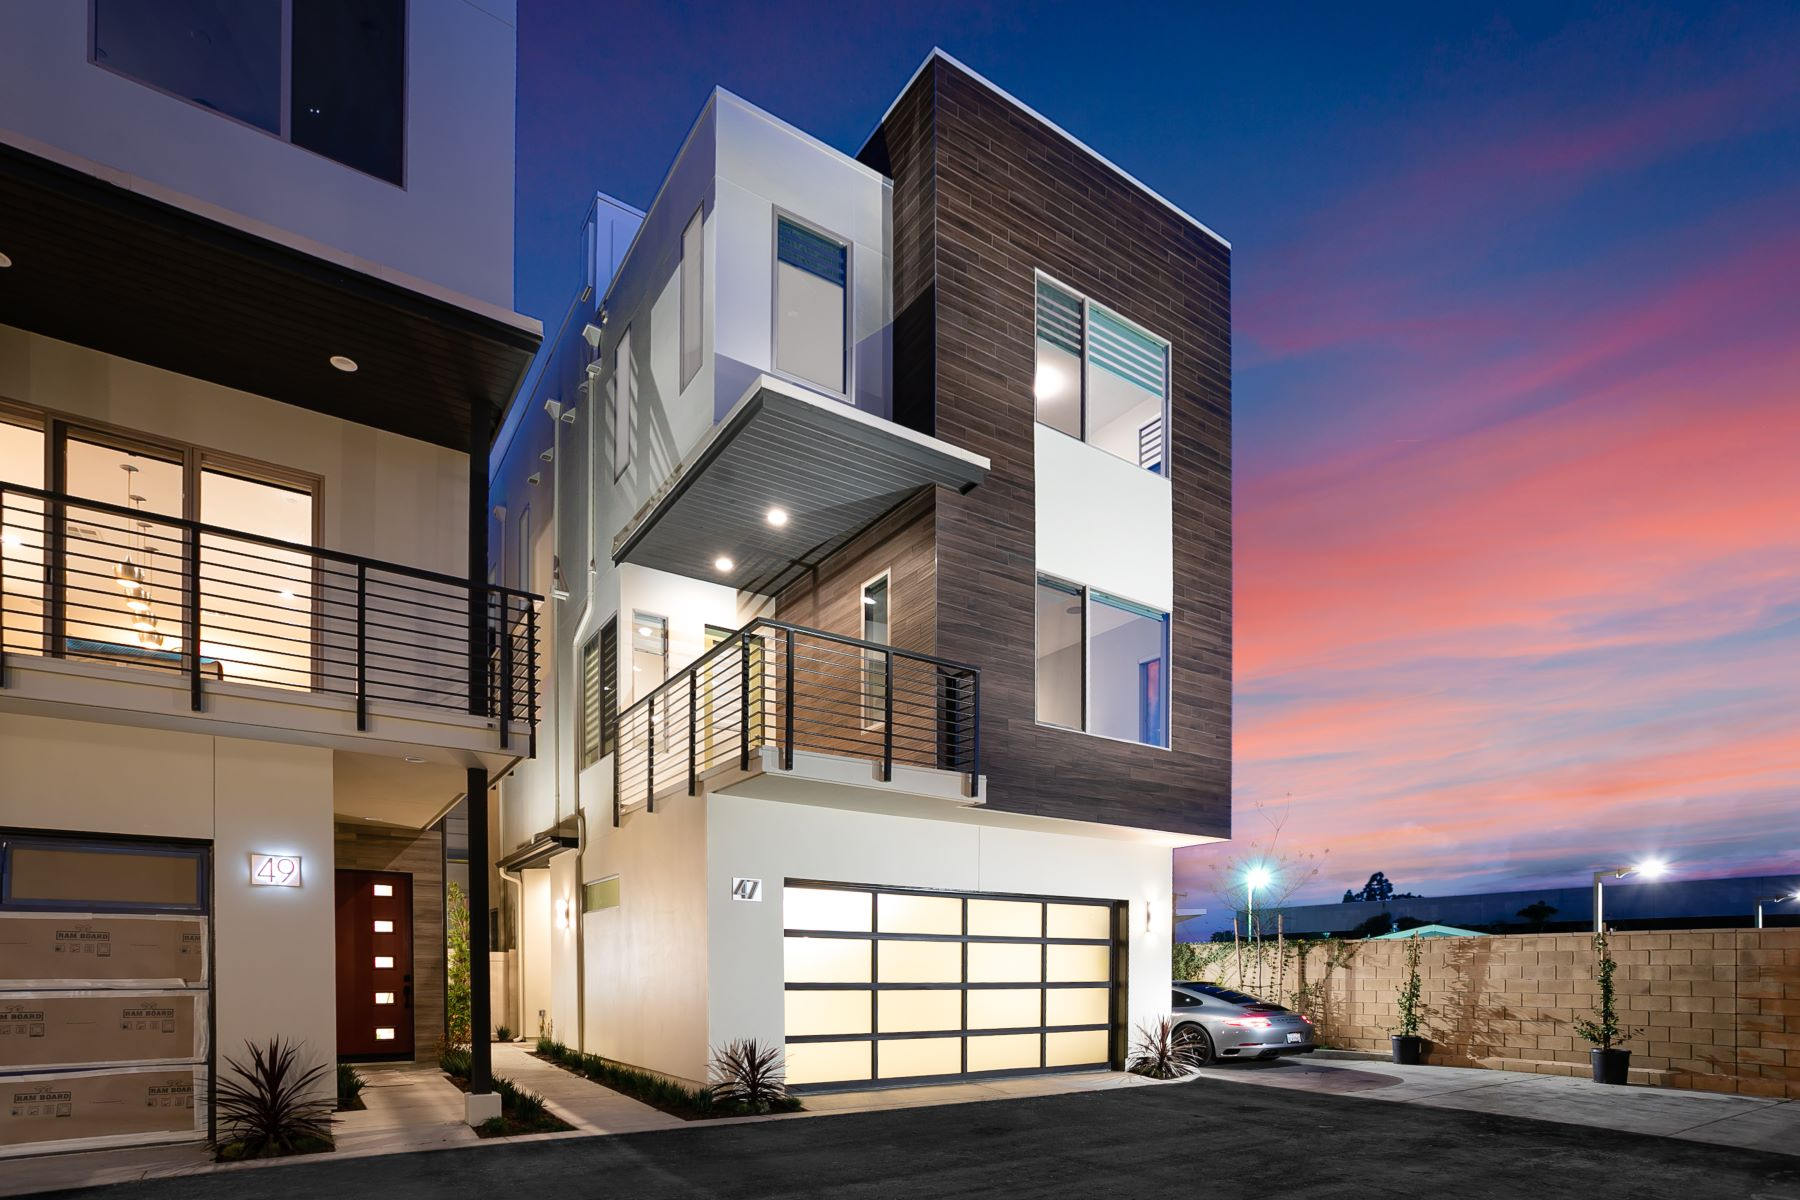 Single Family Homes for Sale at 47 Ebb Tide Circle Newport Beach, California 92263 United States